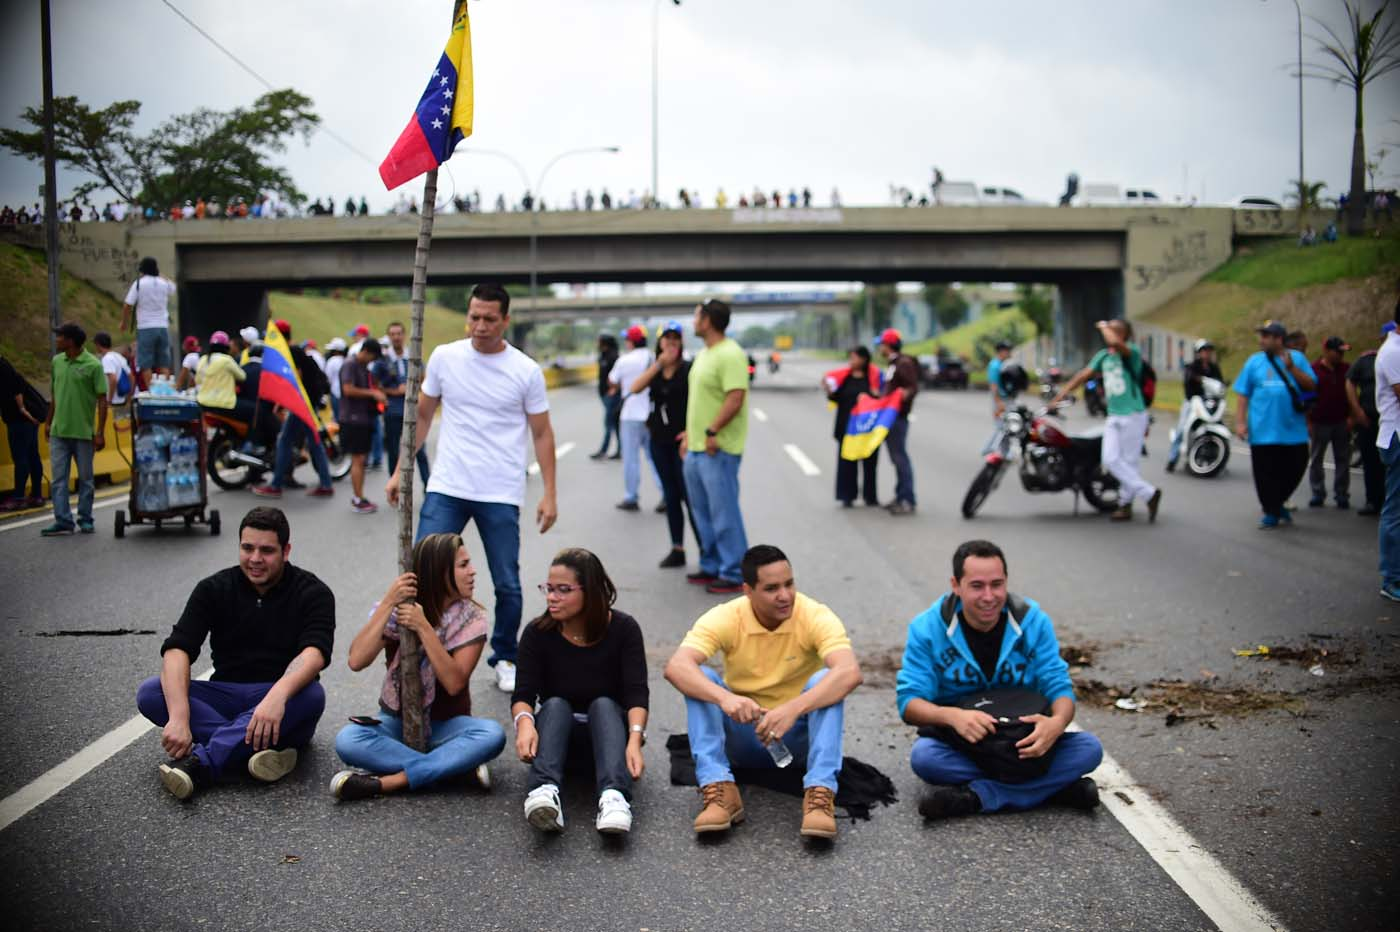 Venezuelan opposition activists block organize a sit-in to block the Francisco Fajardo motorway in Caracas, on April 24, 2017. Protesters plan Monday to block Venezuela's main roads including the capital's biggest motorway, triggering fears of further violence after three weeks of unrest left 21 people dead. / AFP PHOTO / RONALDO SCHEMIDT